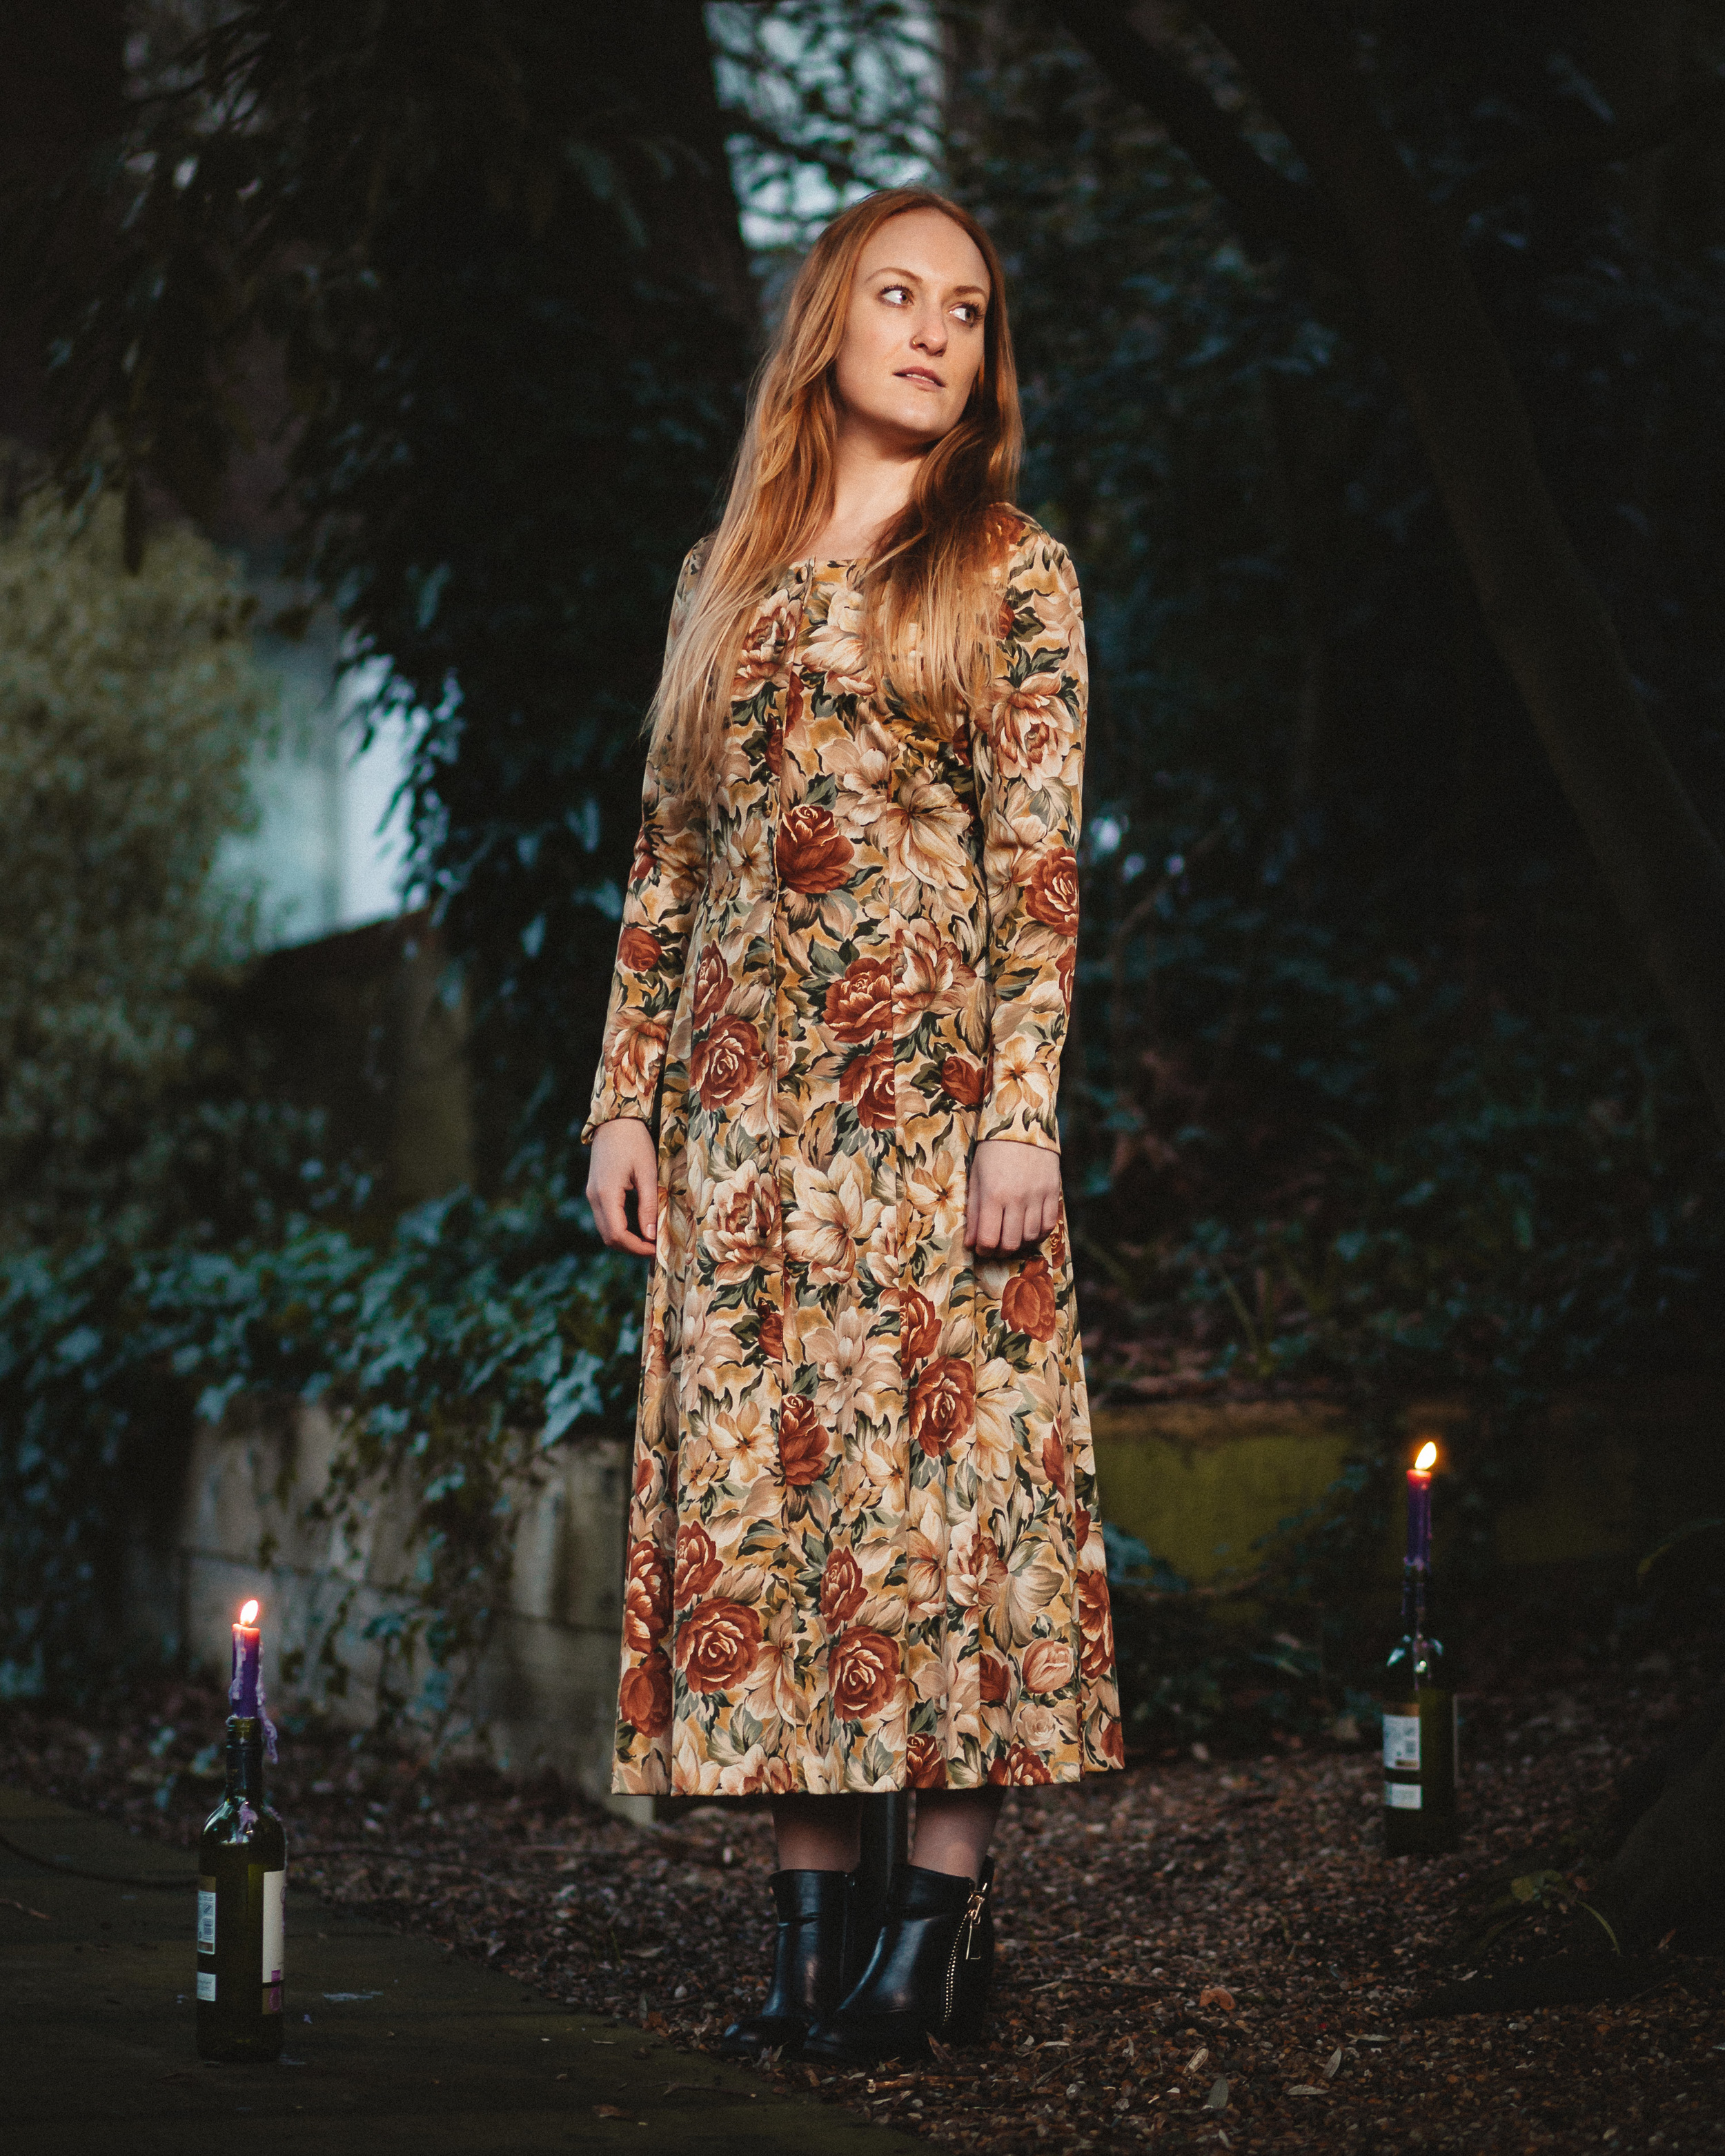 Vintage Fashion and Candles - Portrait of Vanessa posing in a vintage floral dress, purchased on Shimokitazawa, Tokyo.